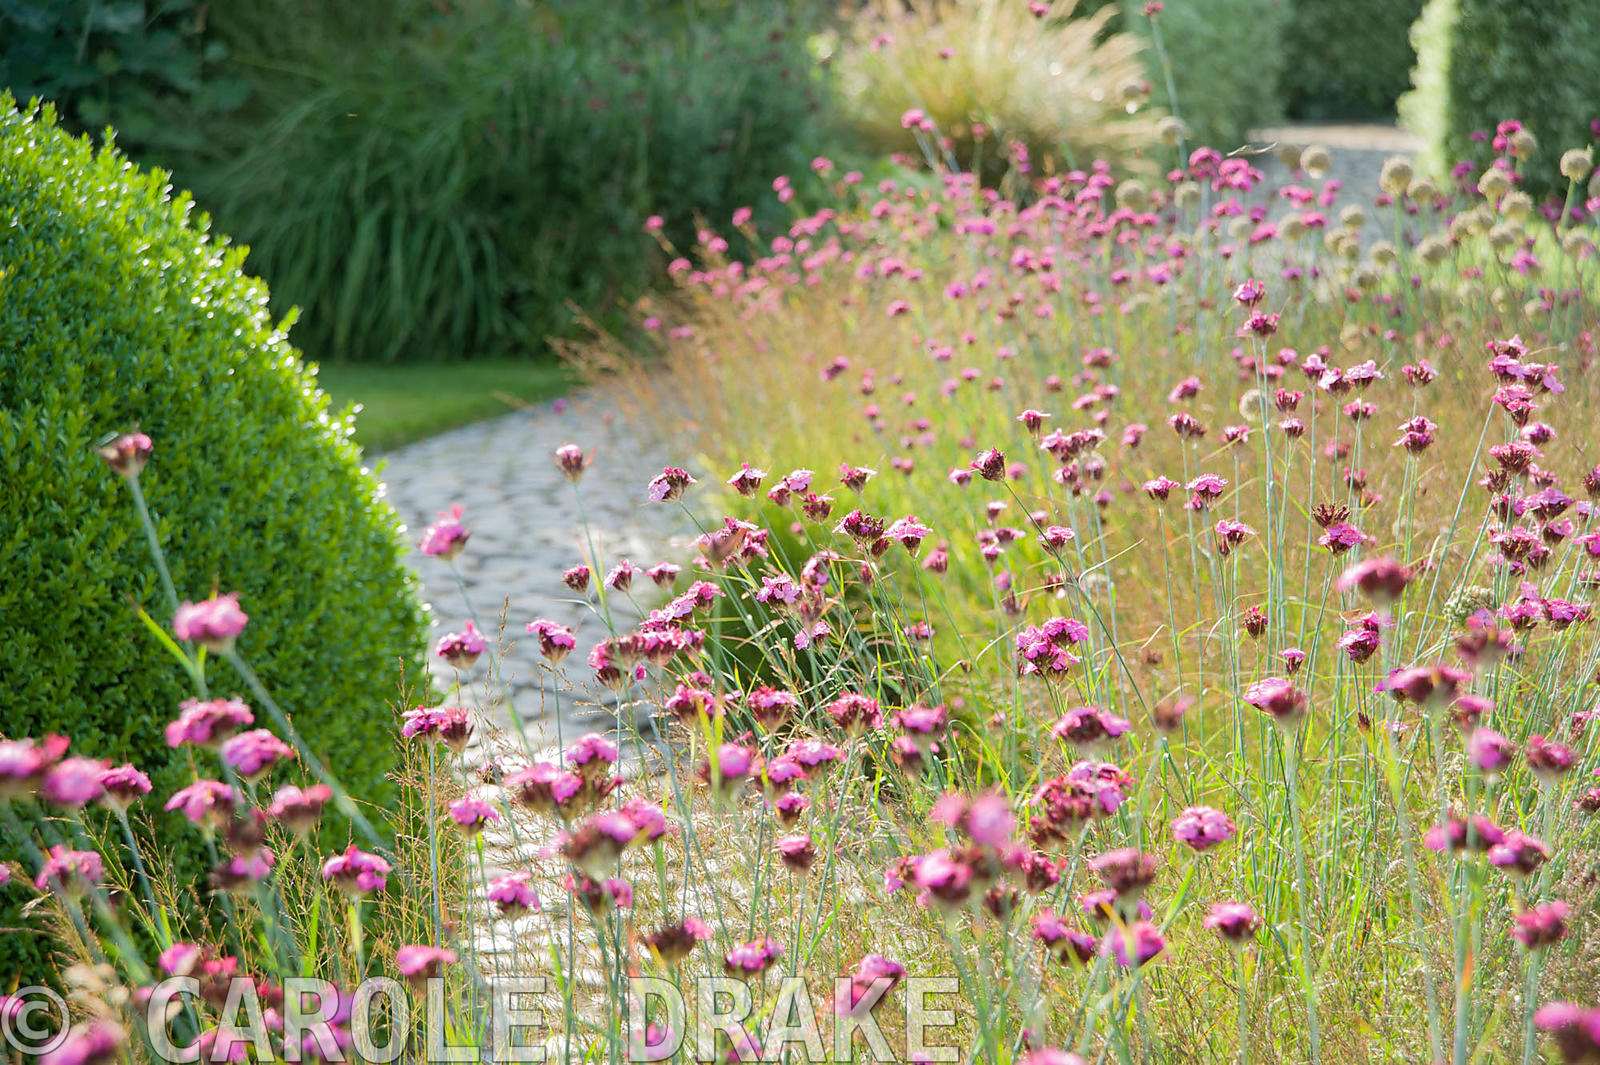 Carole drake the courtyard garden designed by piet for Gardening with grasses piet oudolf